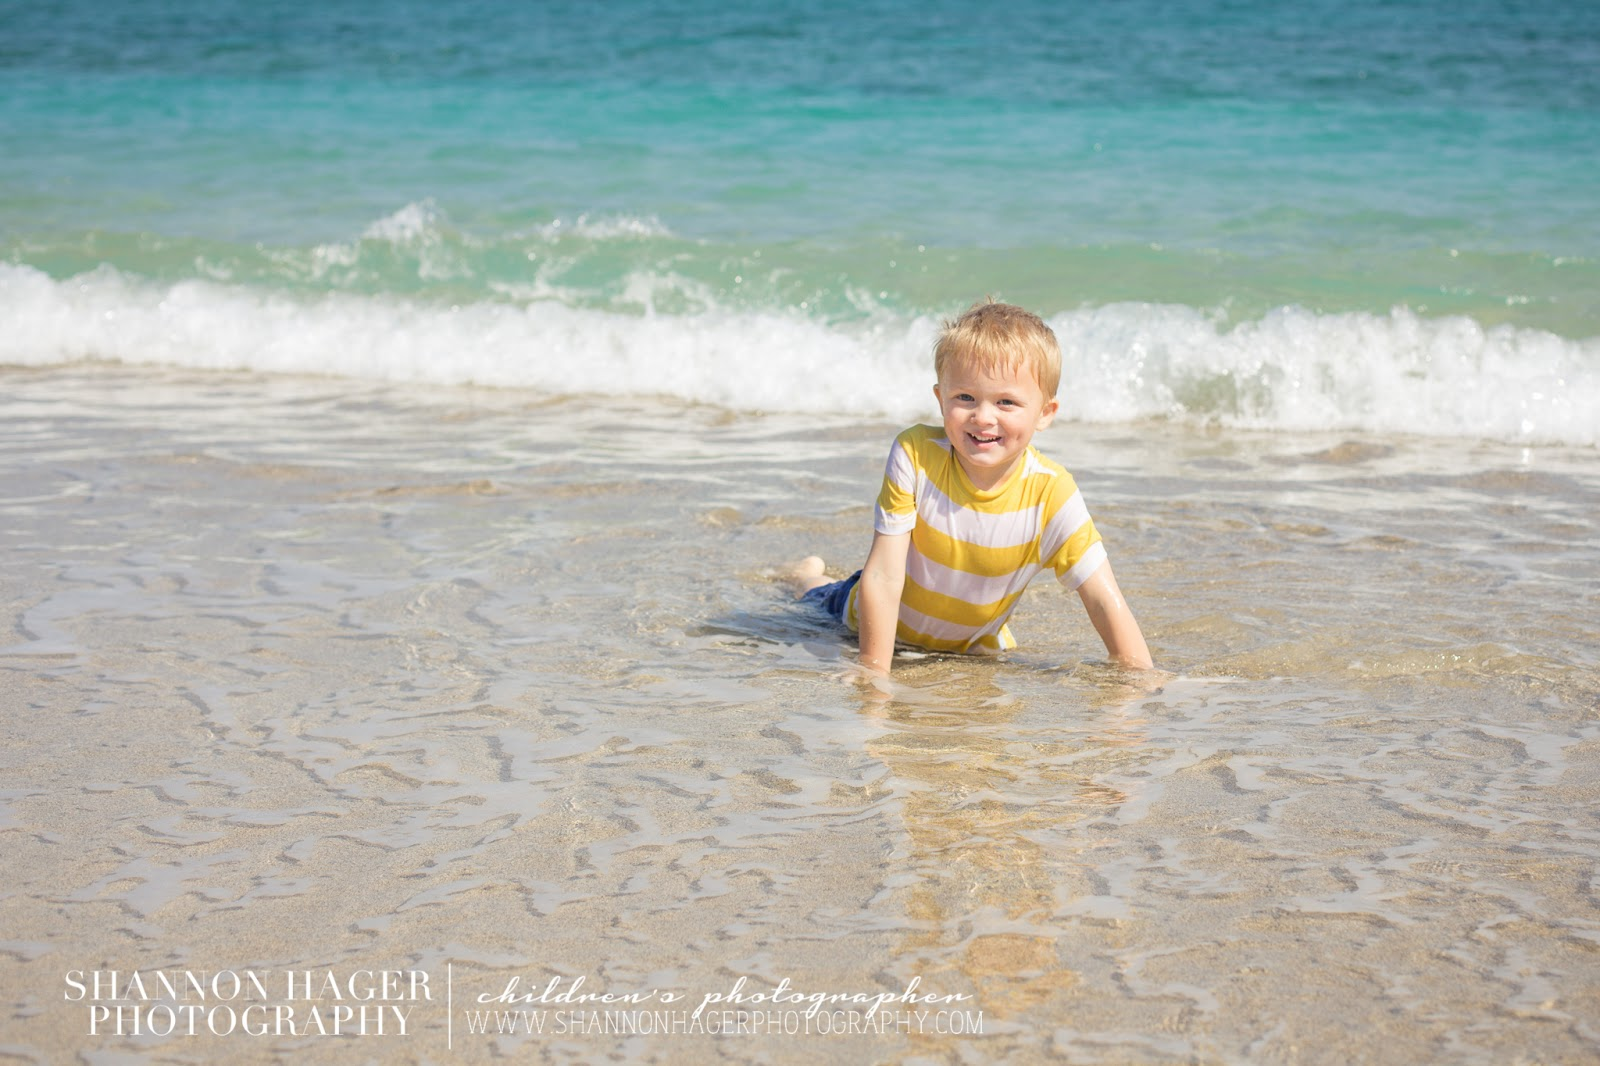 Children's Photography by Shannon Hager Photography